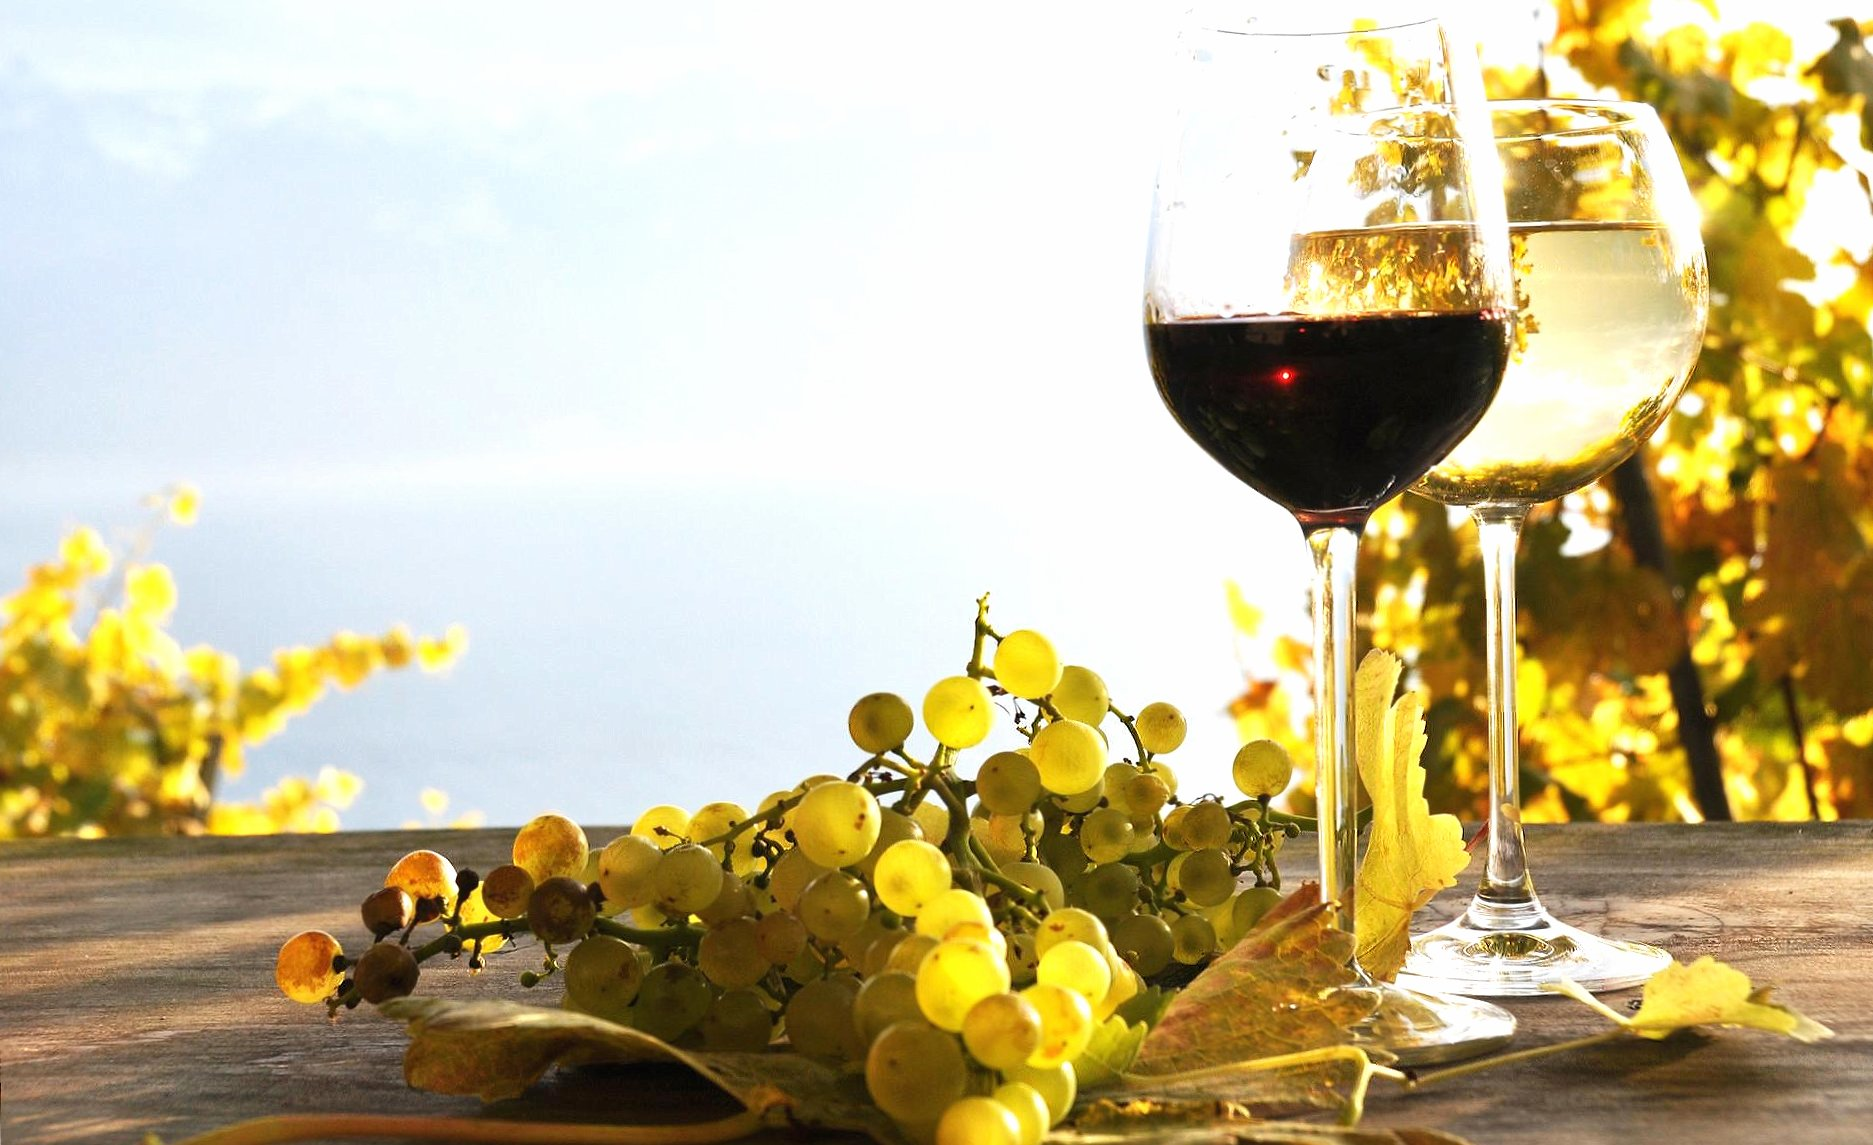 Sunrise and wine wallpapers HD quality